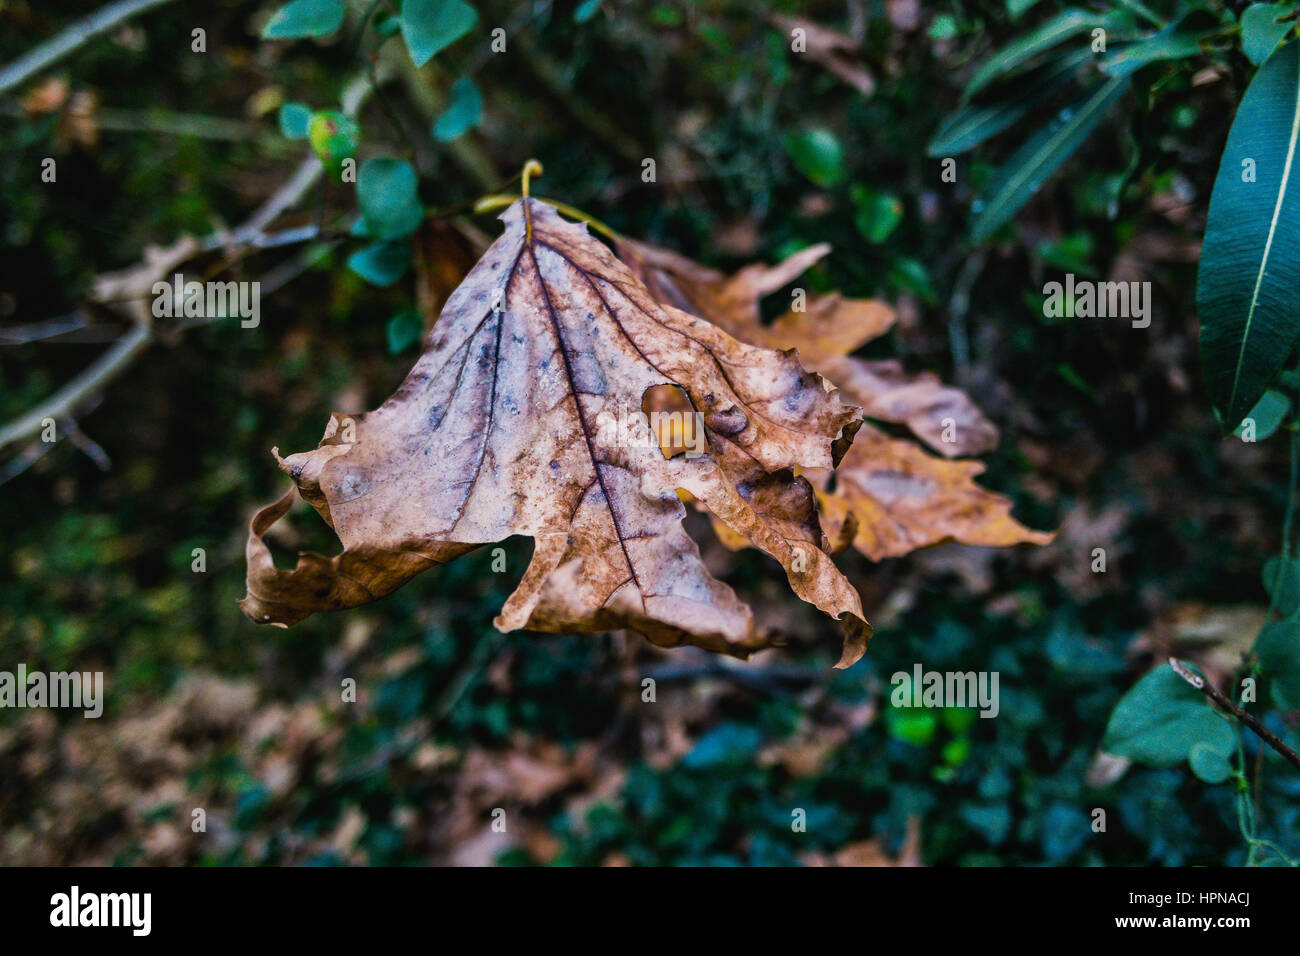 Tablo Stock Photos Tablo Stock Images Alamy